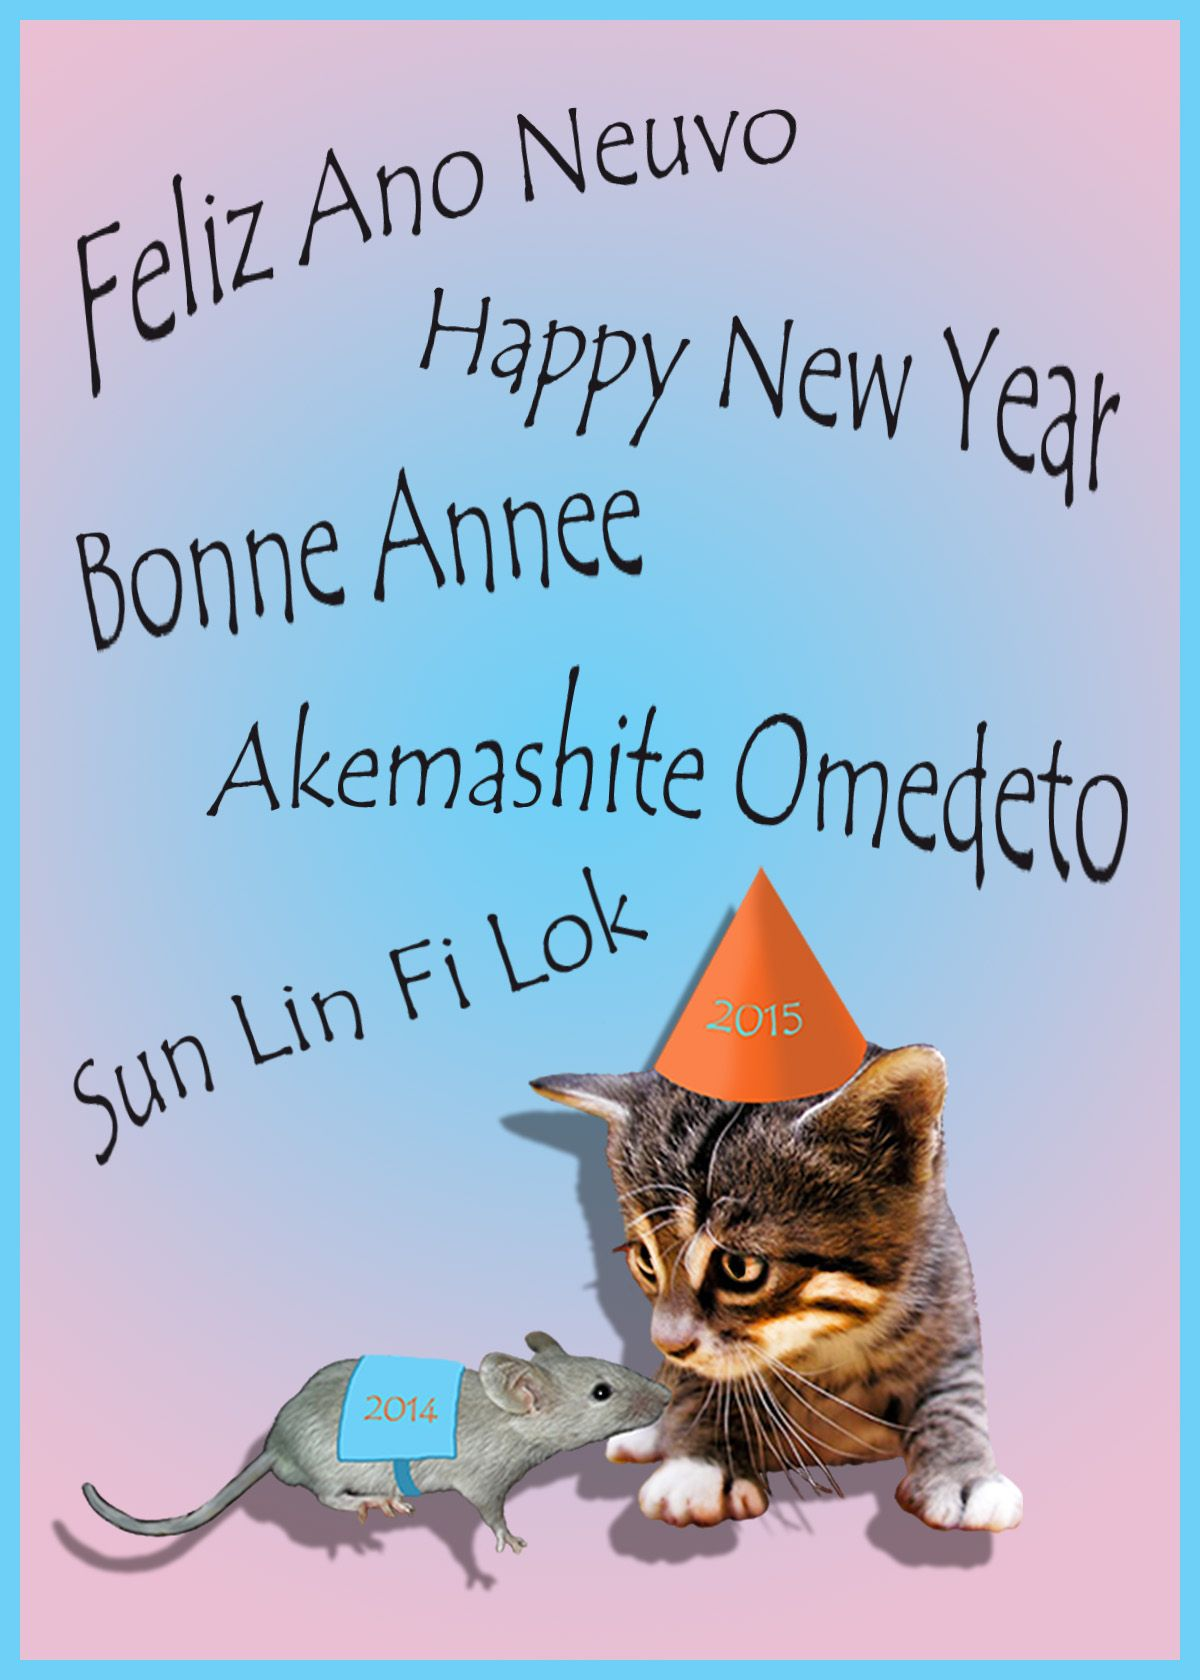 Happy new year in spanish language size of this new years card happy new year in spanish language size of this new years card with the greeting in different languages m4hsunfo